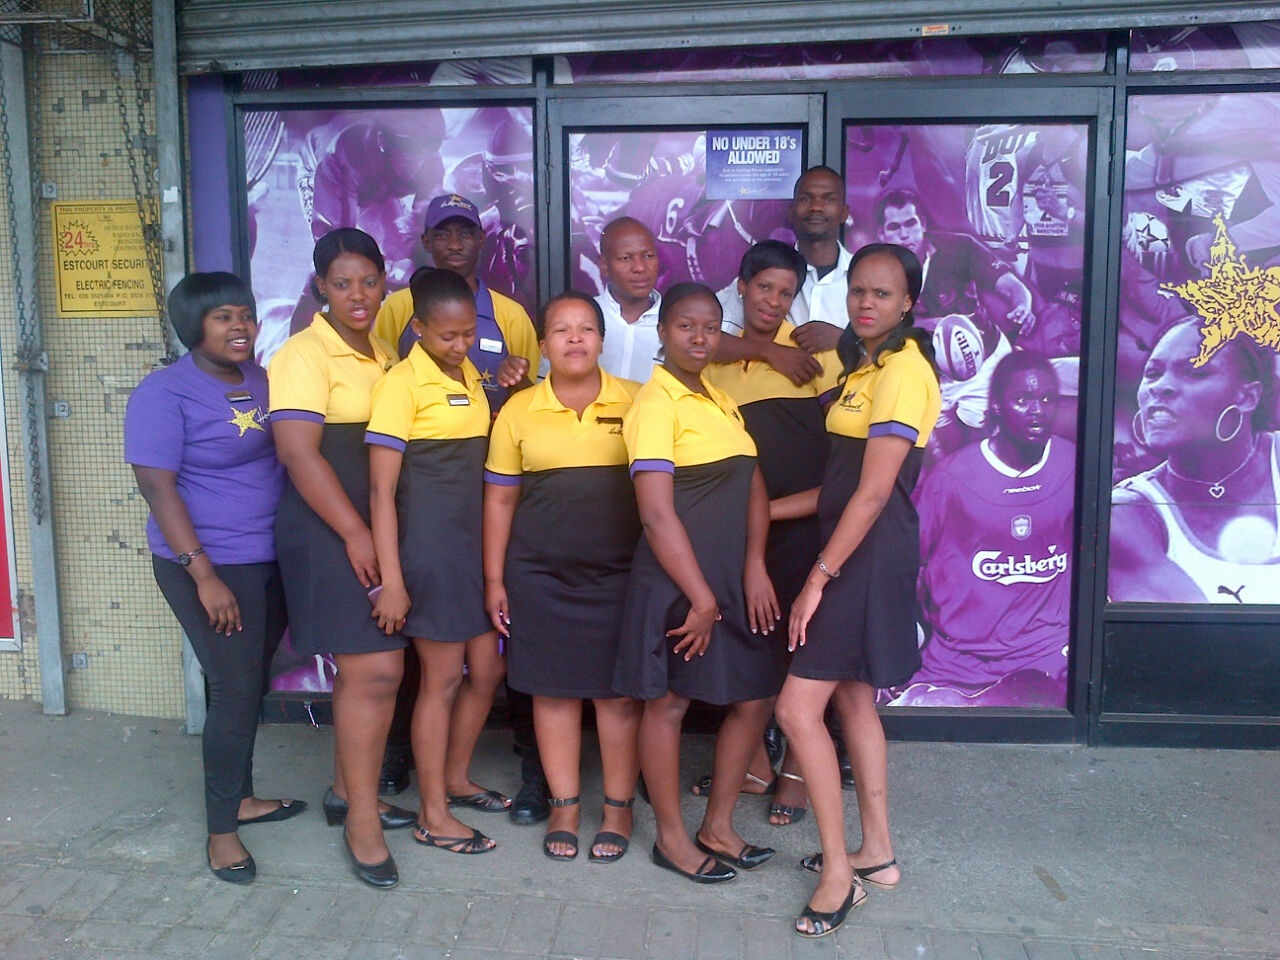 Hollywoodbets Estcourt - Team Members - Staff